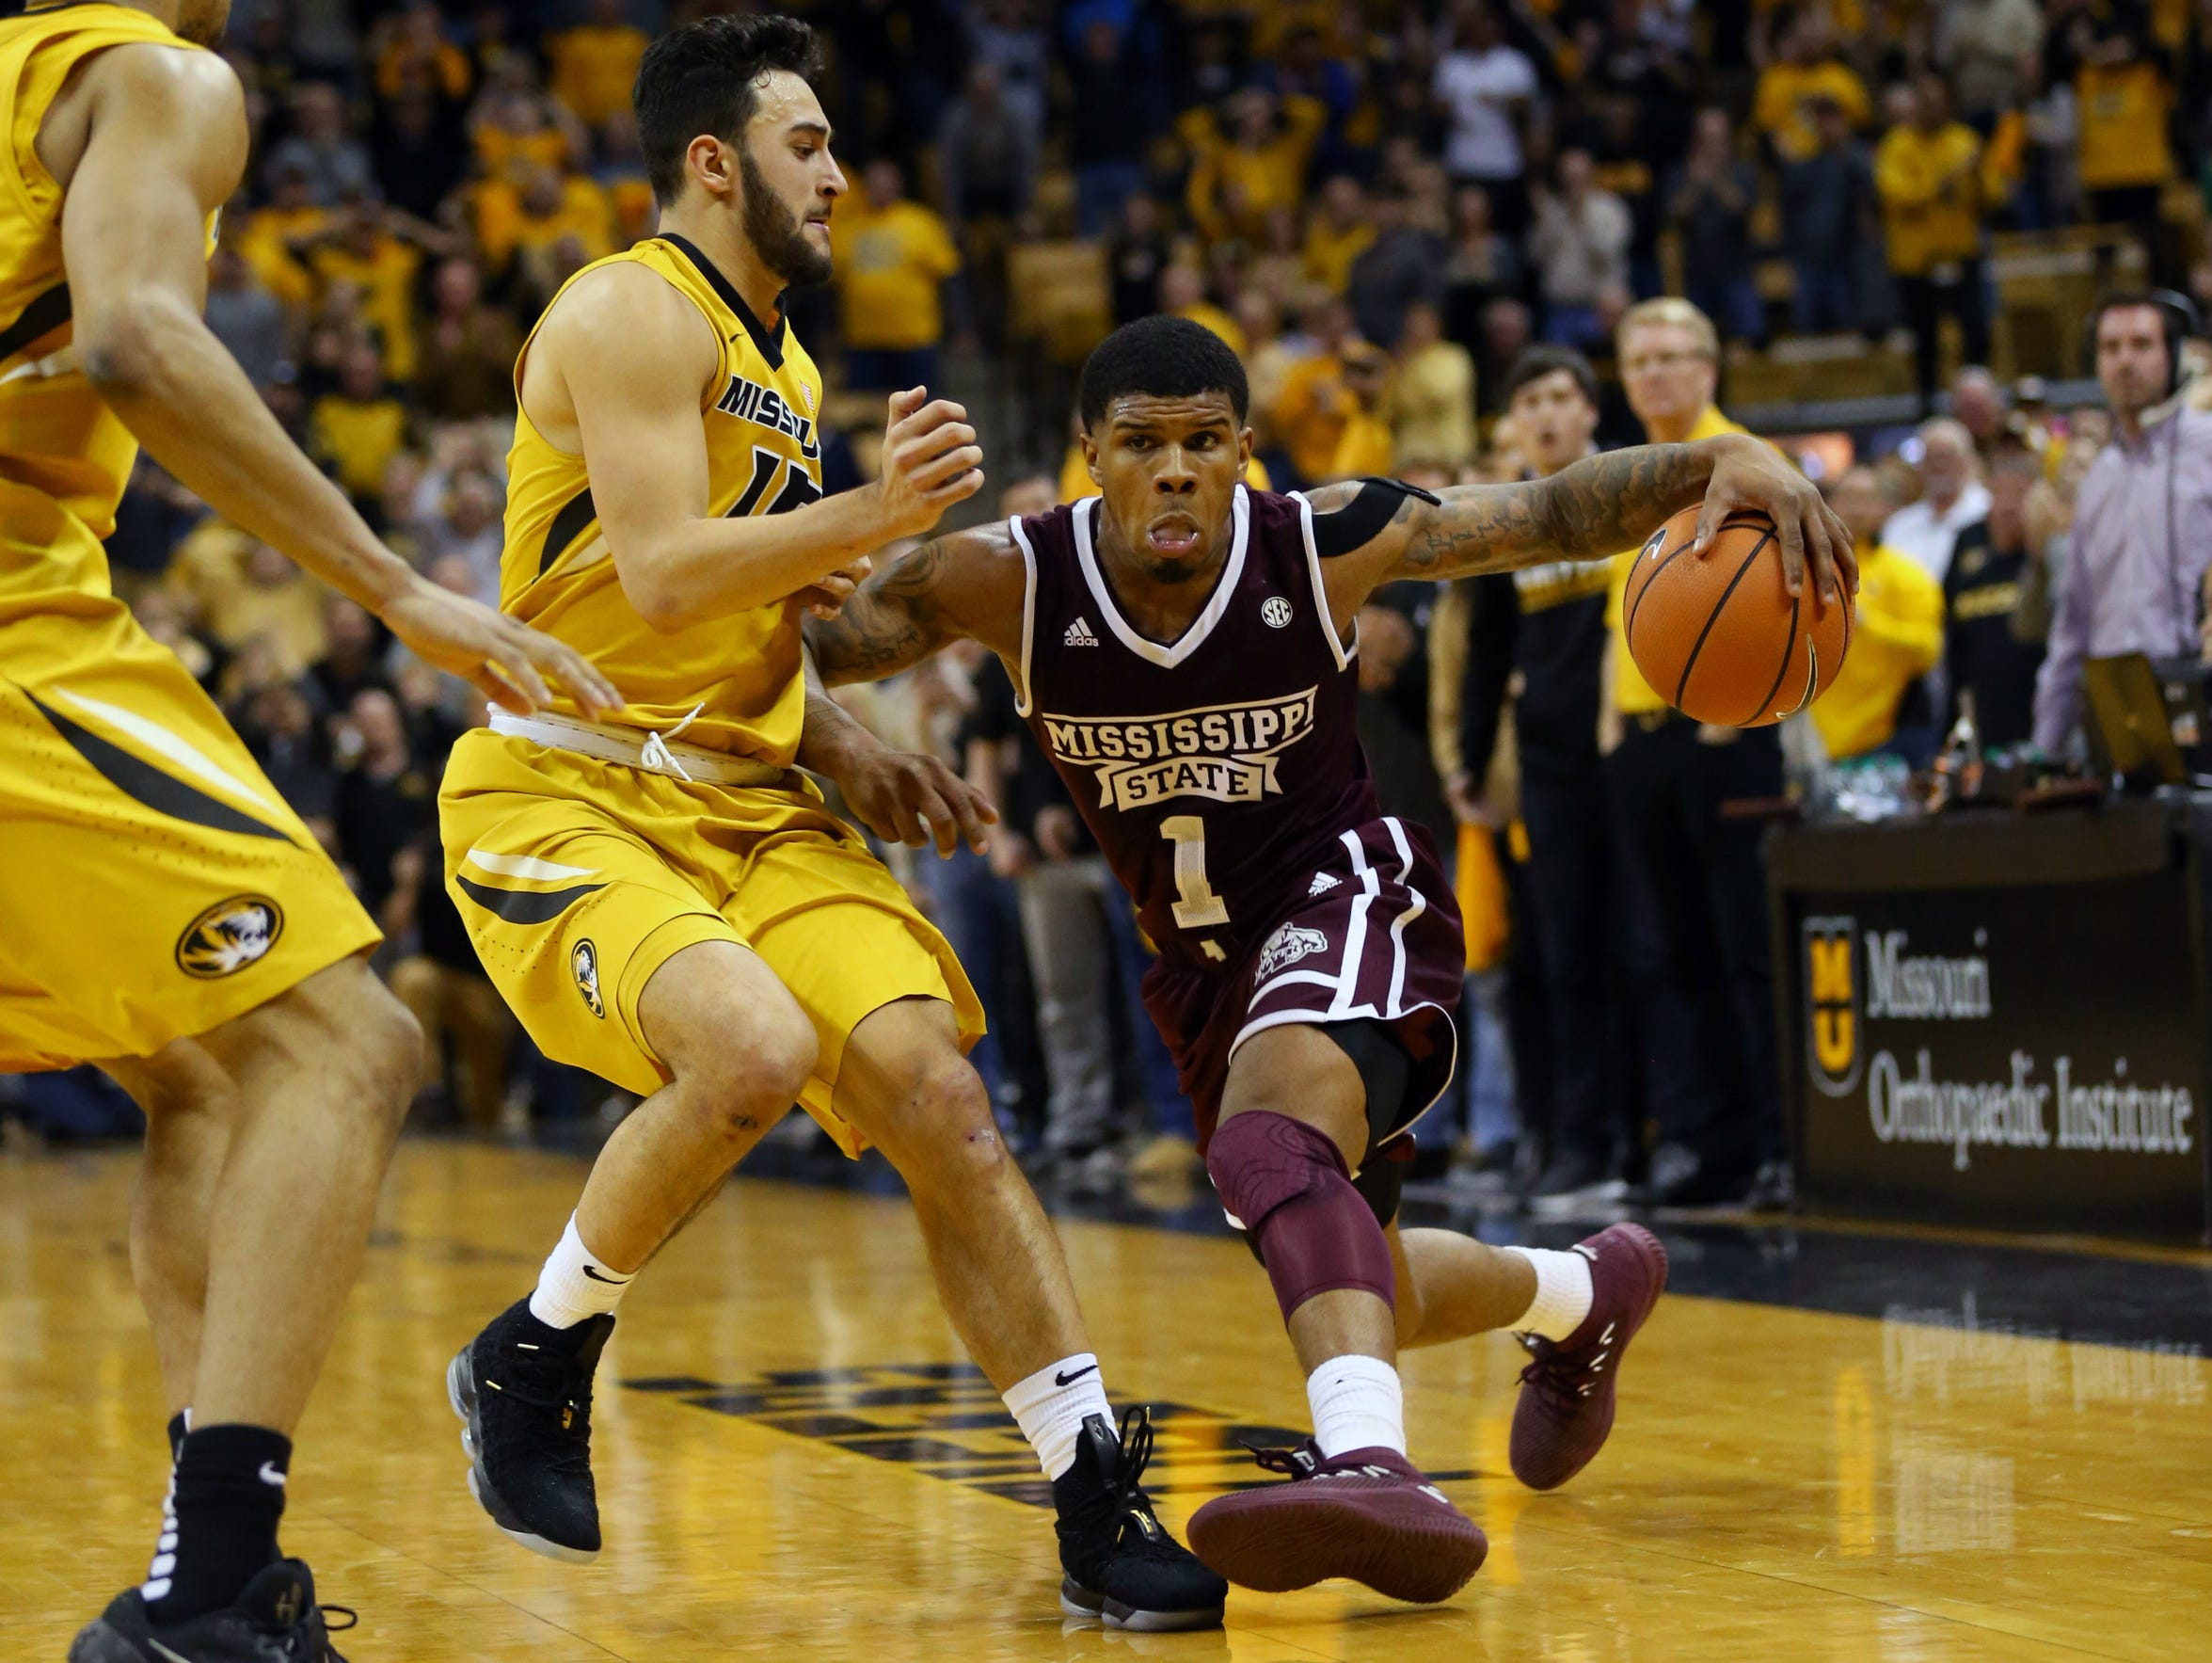 Mississippi State Bulldogs guard Lamar Peters (1) commits an offensive foul against Missouri Tigers guard Jordan Geist (15) in overtime at Mizzou Arena.